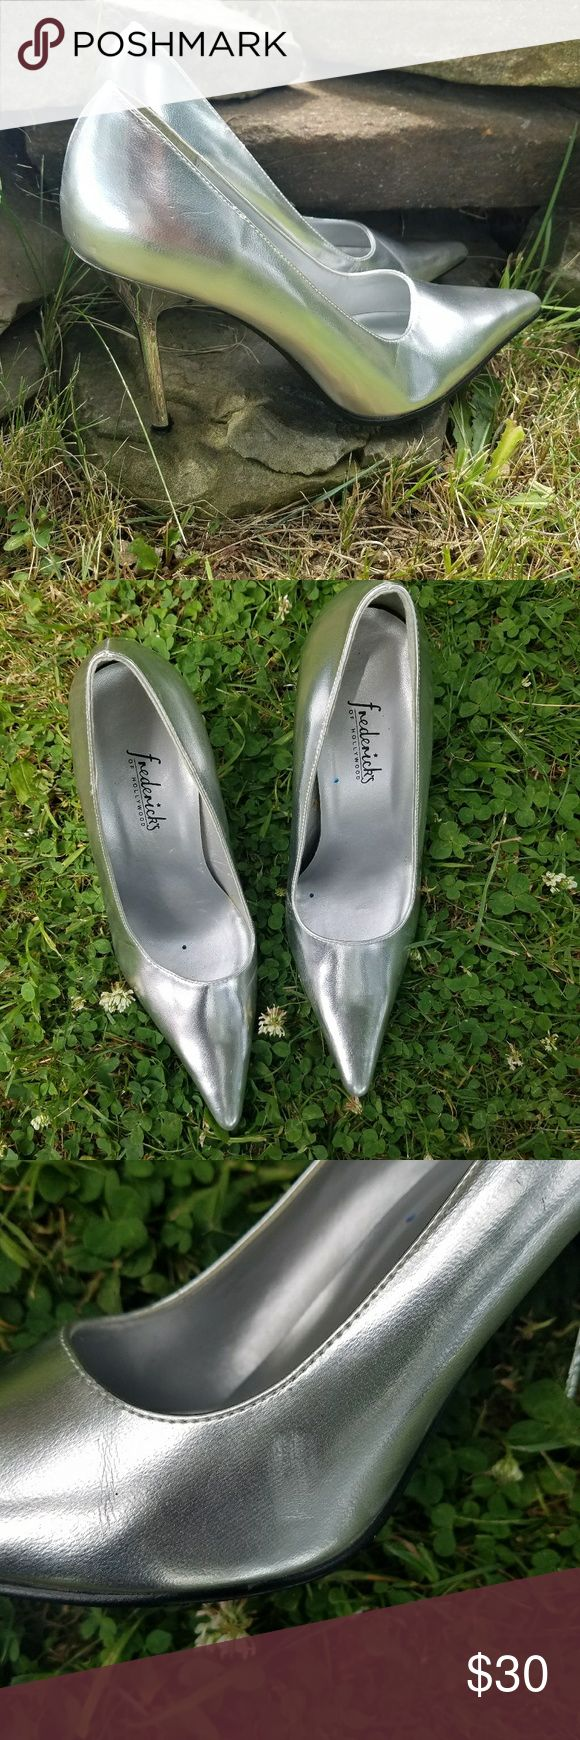 Frederick's of Hollywood Metallic Pumps GUC with some scuffing shown in photos  Size 6.5 width M. No box. Frederick's of Hollywood Shoes Heels